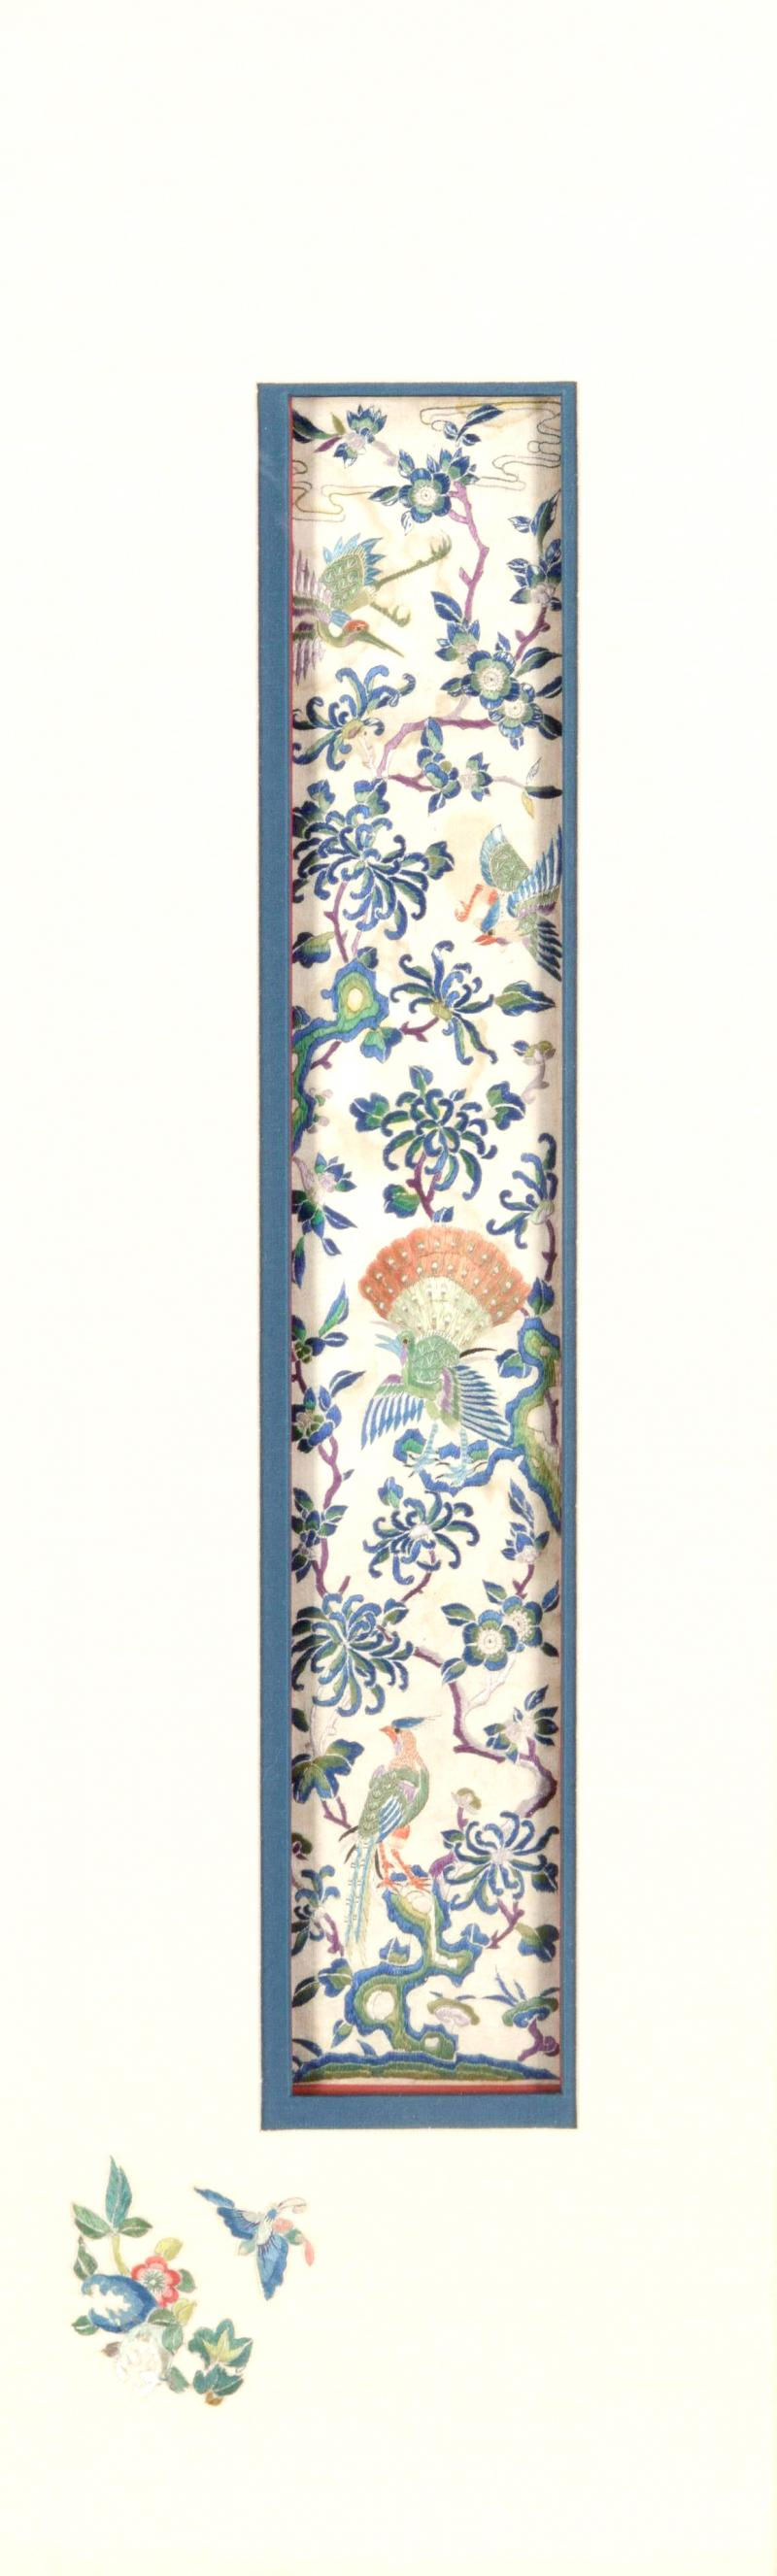 Framed Antique Chinese Embroidery Panel Qing Dynasty Provenance